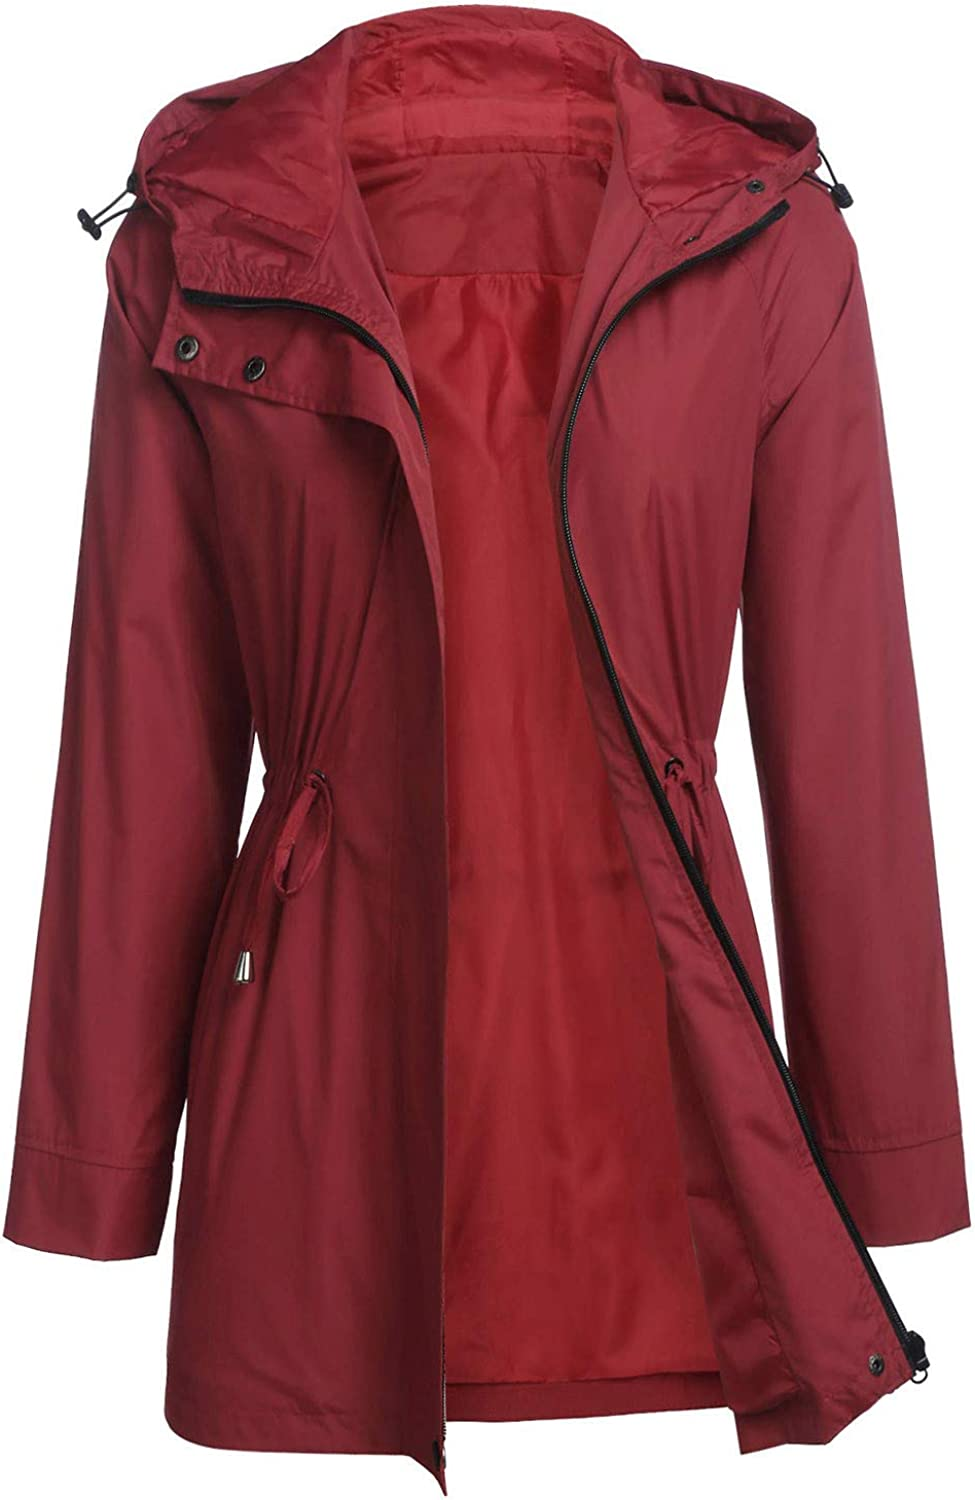 Forwelly Womens Winter Lapel Button Windproof Trench Coat Hooded Jacket Ladies Overcoat Outwear